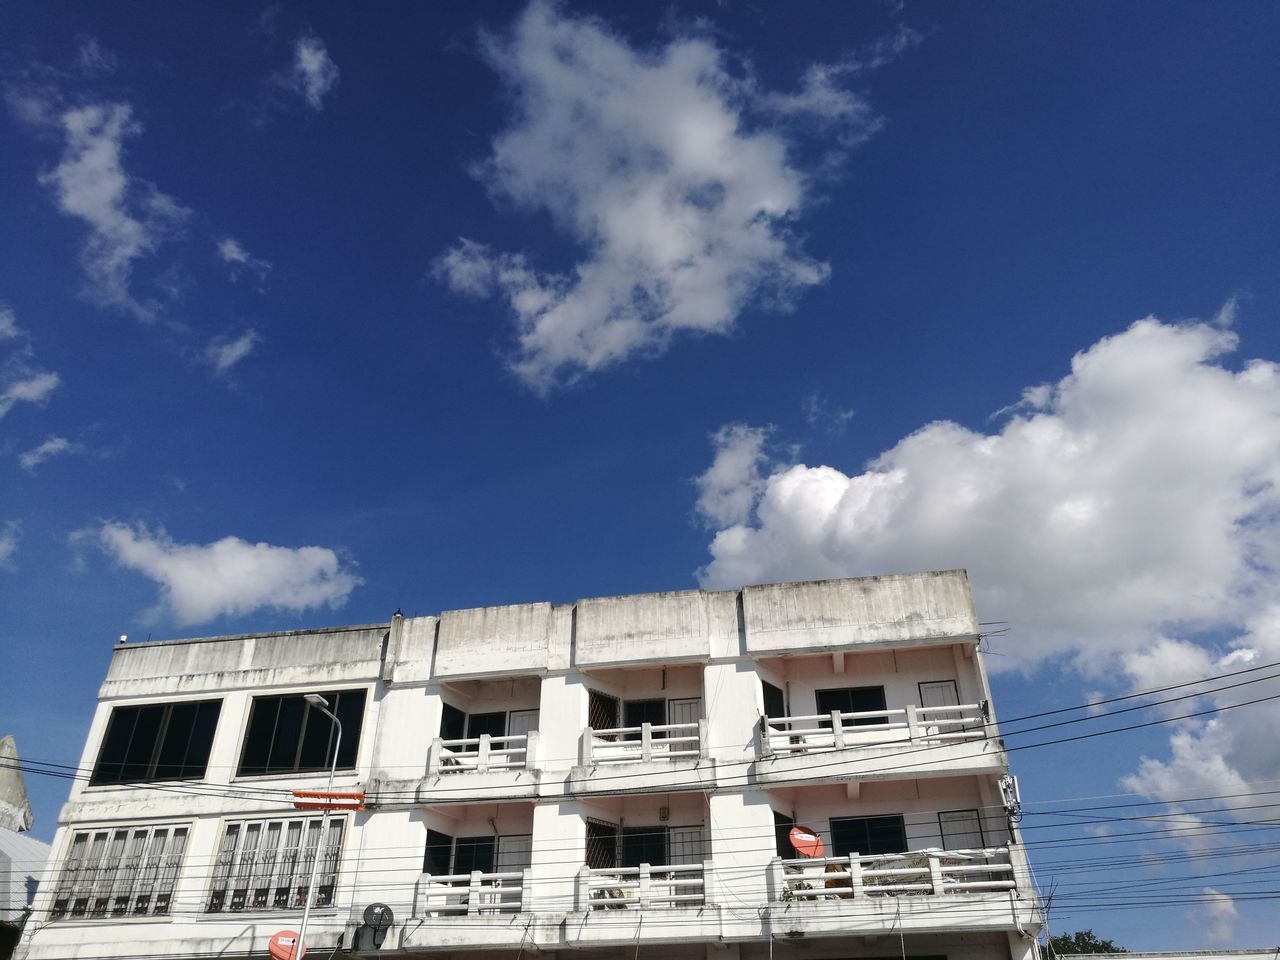 Built Structure Politics And Government Architecture Business Finance And Industry Cloud - Sky Science No People Sky Outdoors Day Astronomy HuaweiP9 Huawei The City Light EyeEmNewHere Building Architecture Cityscape City Minimalist Architecture